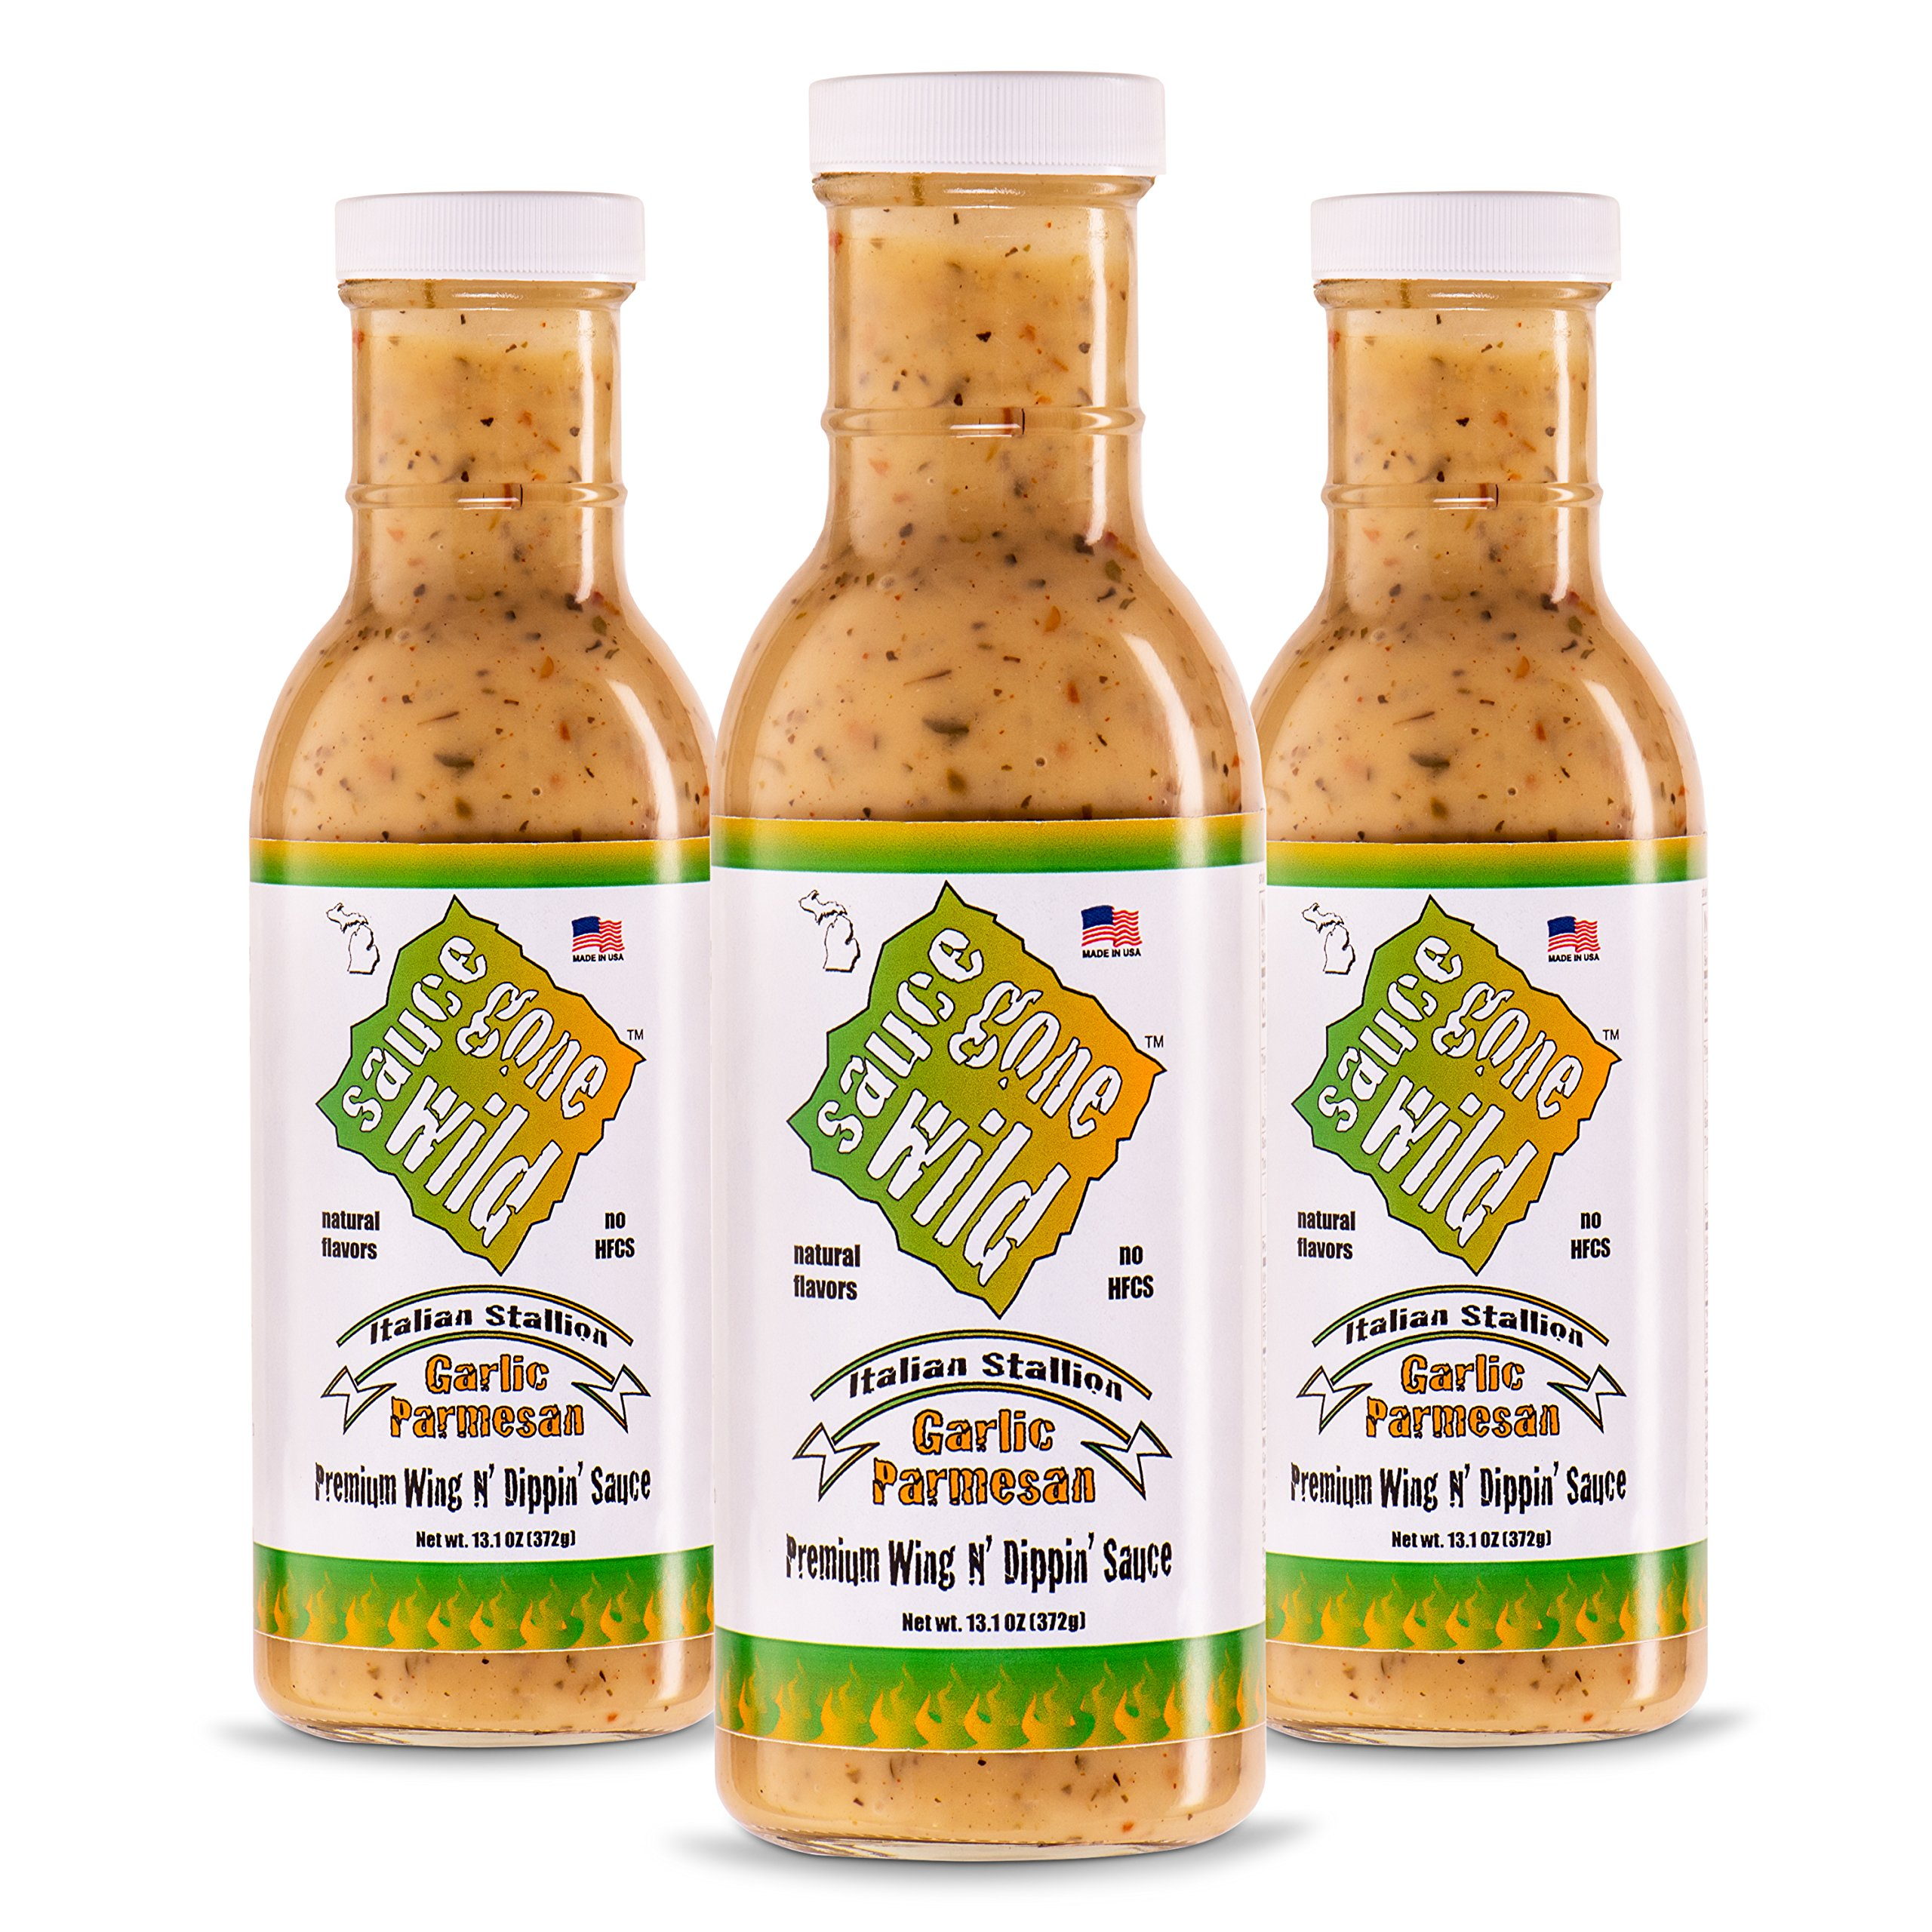 Sauce Gone Wild Wing Sauce -13.1oz - 3 Bottles - Garlic Parmesan Flavor - Hot Marinade for Grilling & Cooking Chicken - Made in USA - Tasty Restaurant Style Wings at Home